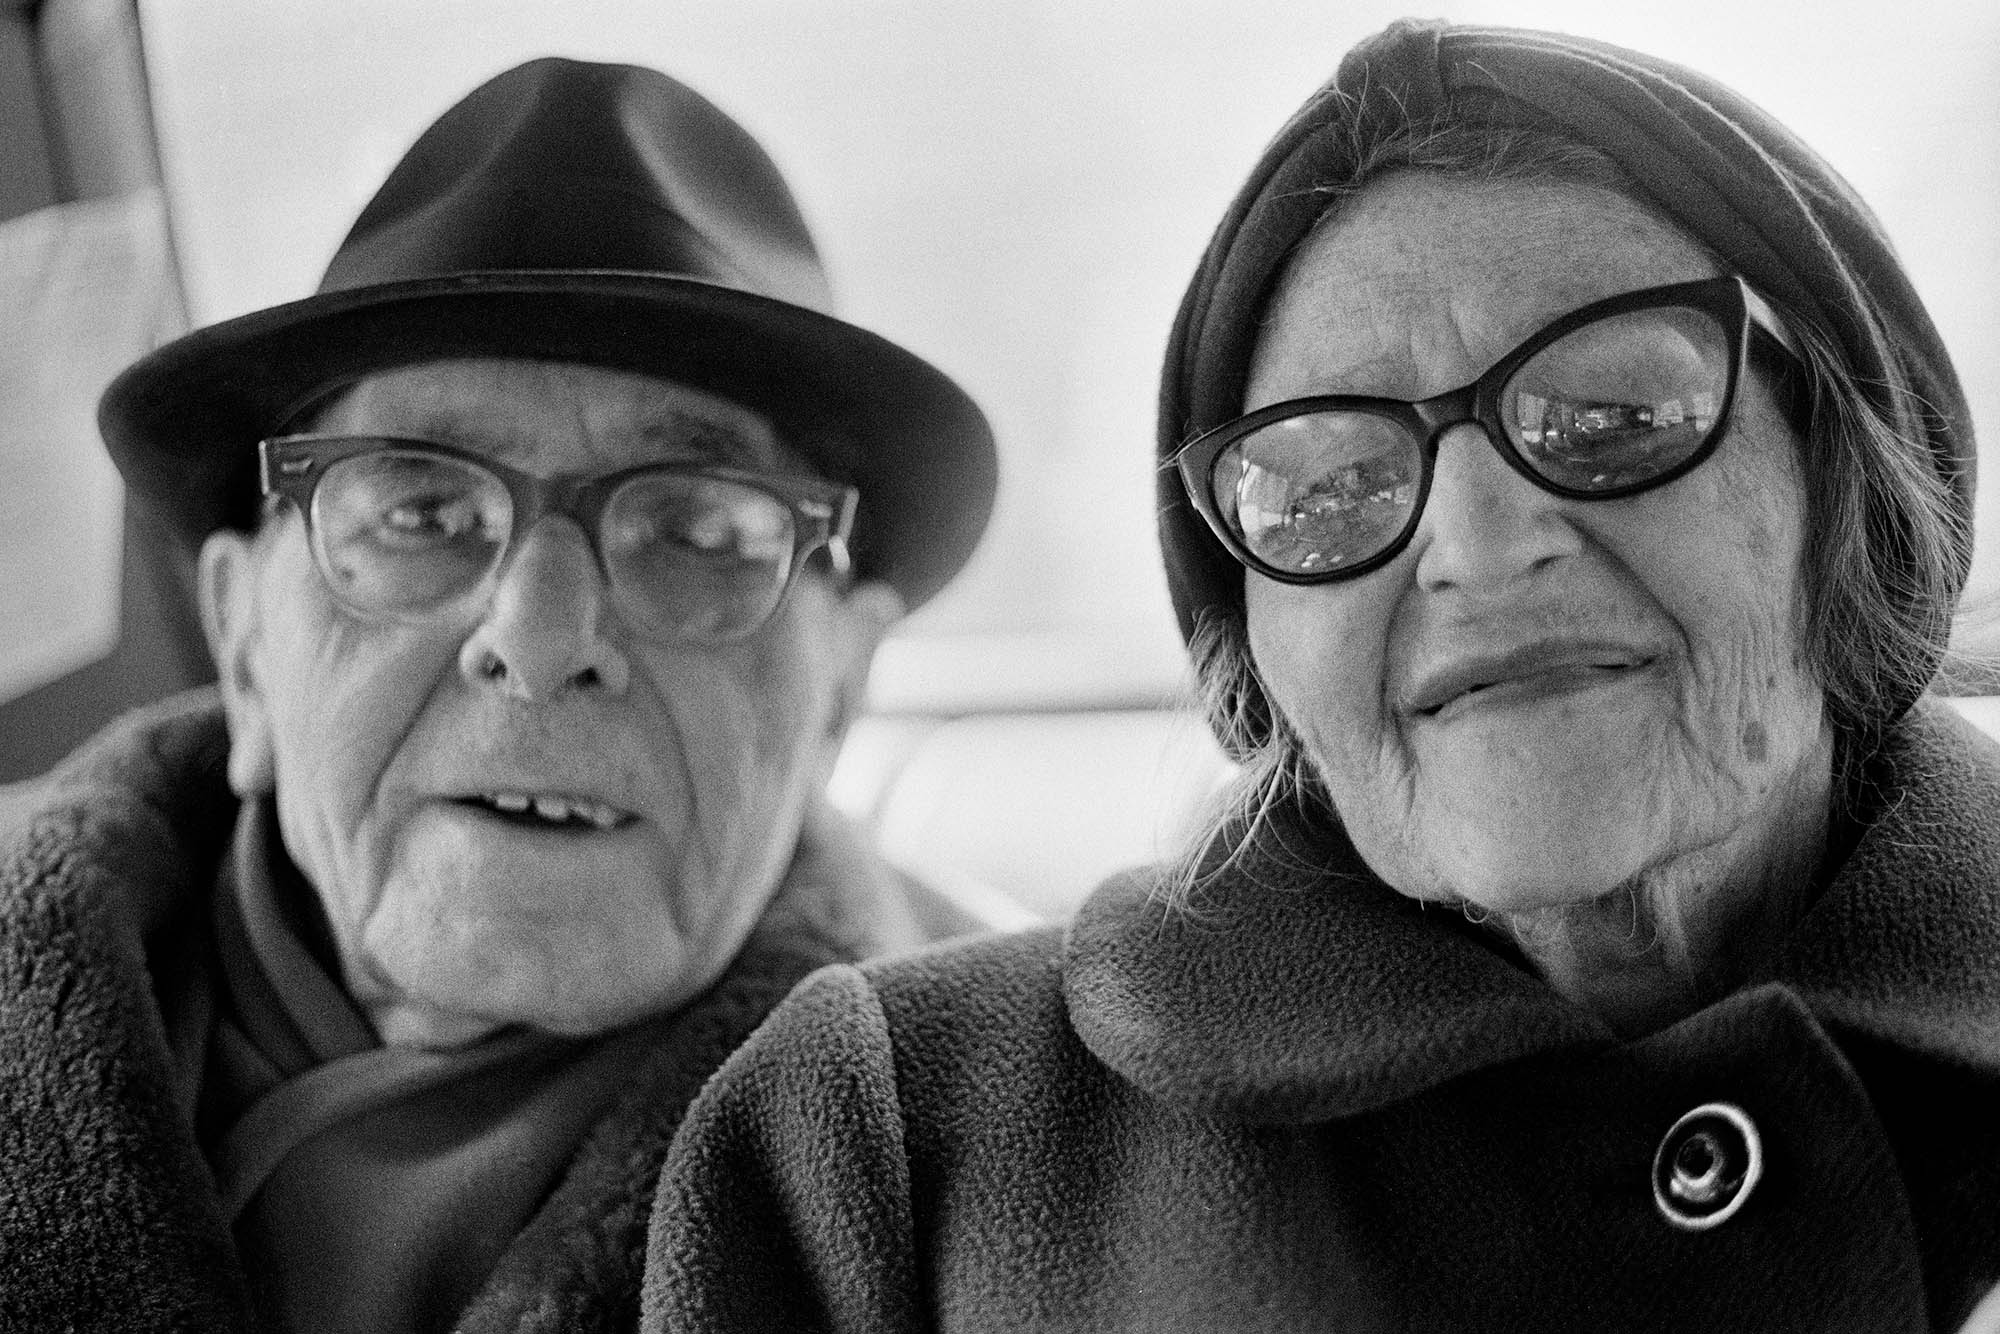 Joseph Rodriguez's 'Taxi' portraits capture the special bond between strangers in an unforgiving city